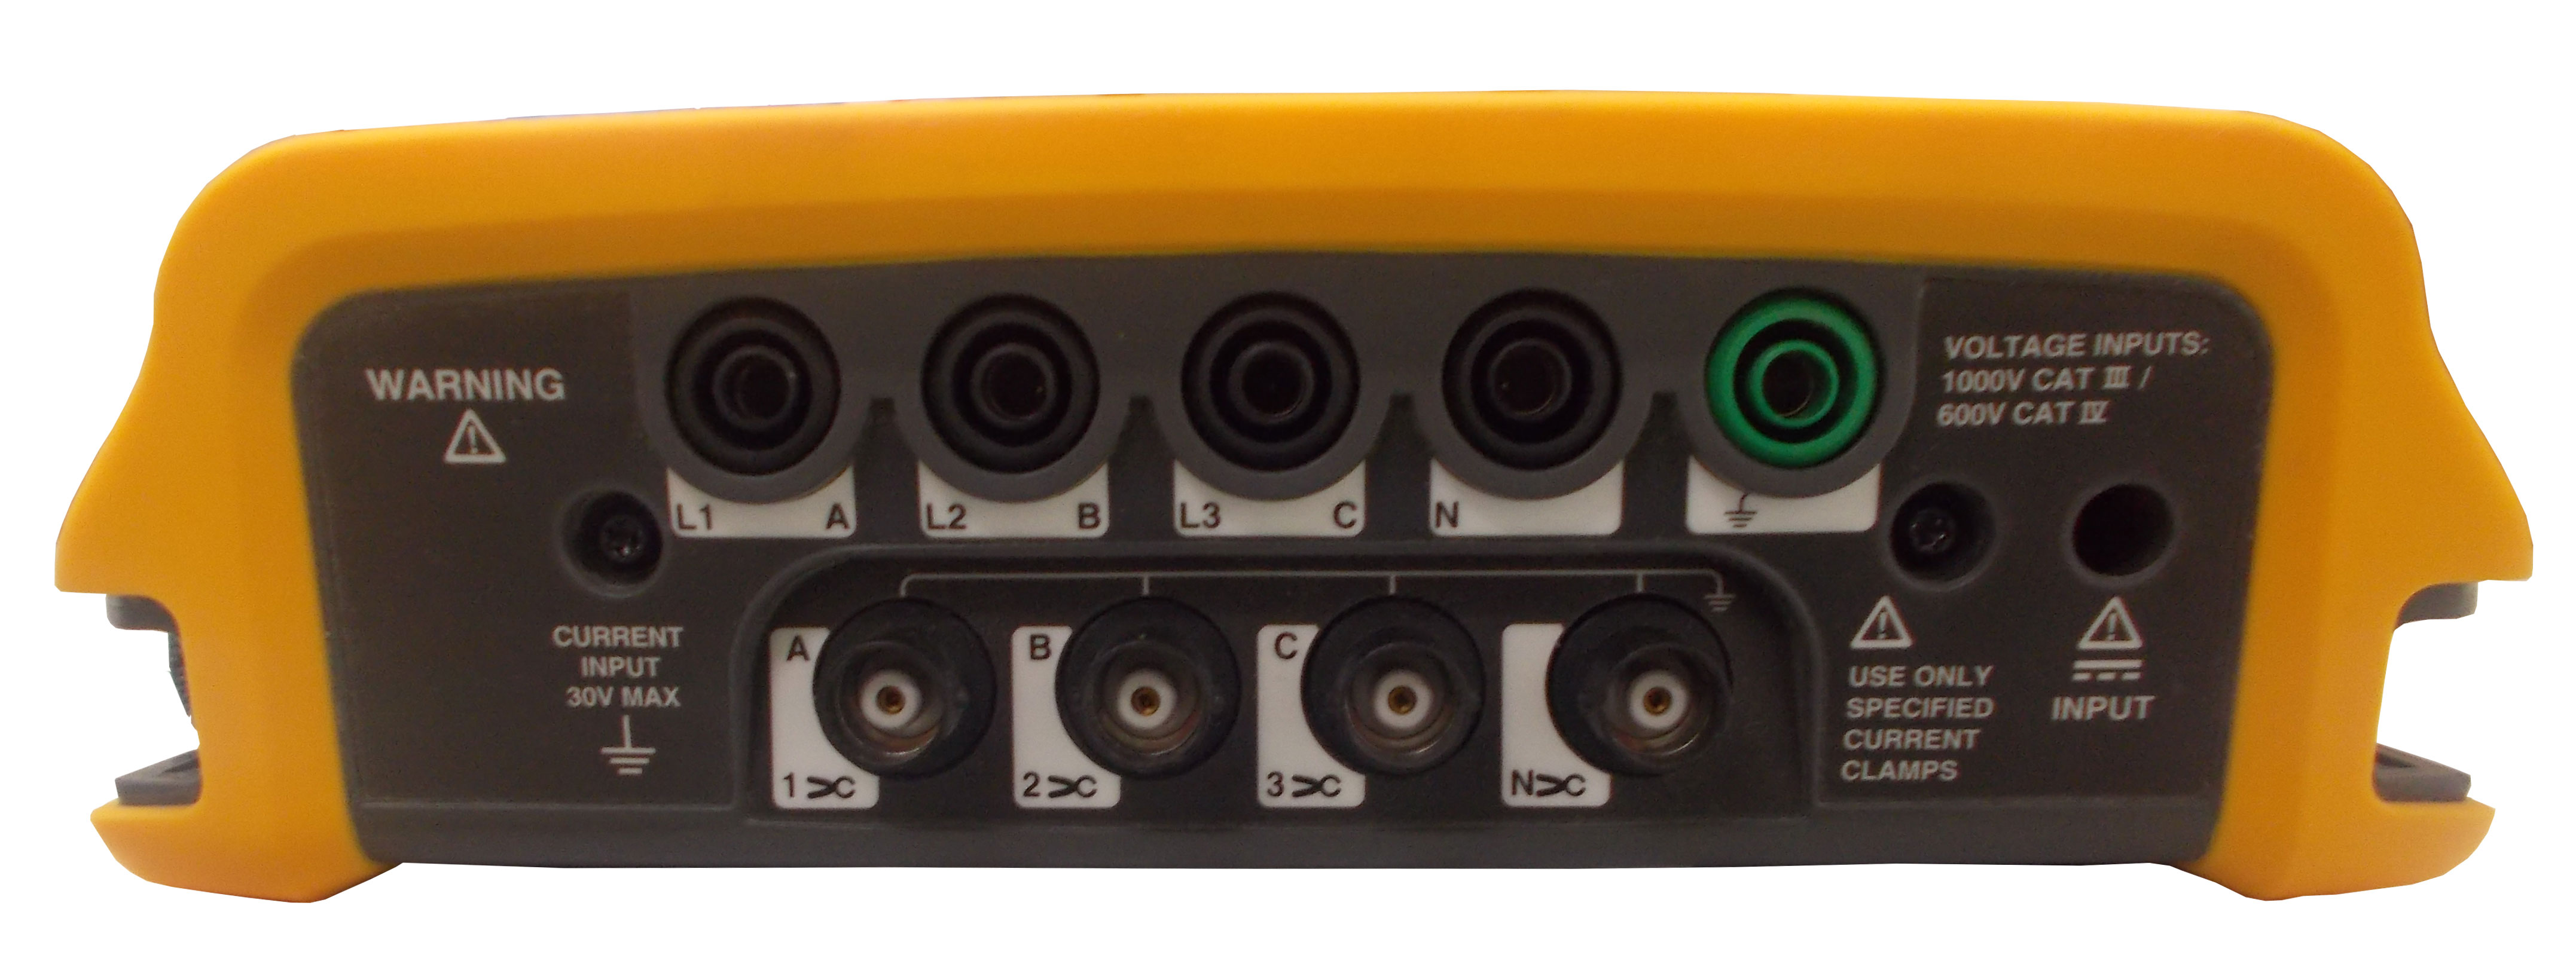 Fluke 437-II Three-Phase Power Quality Analyzer